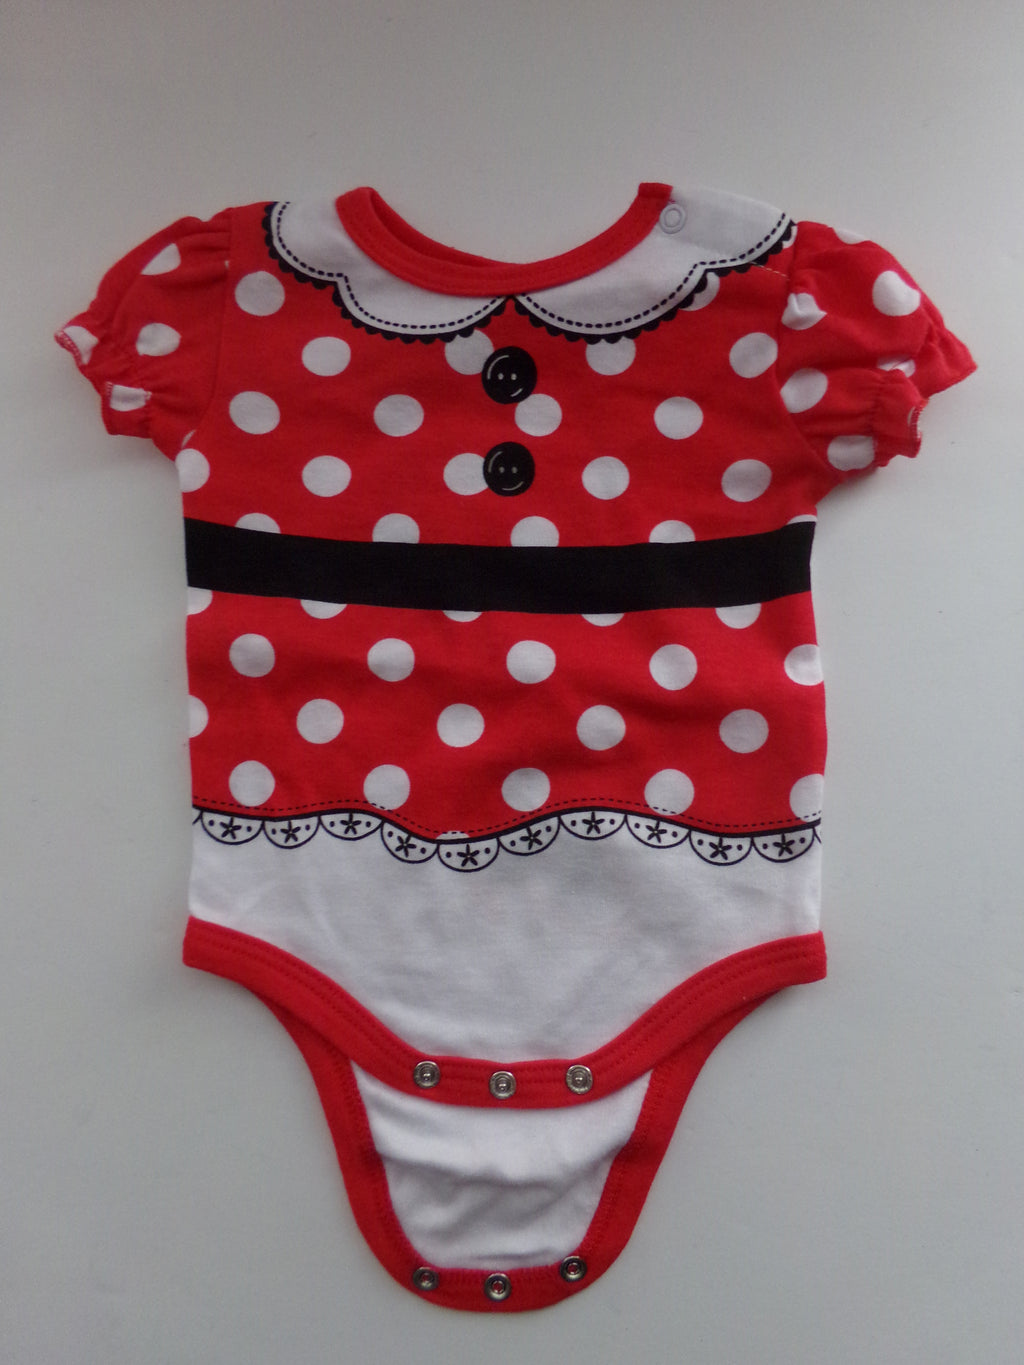 Disney Baby Minnie Mouse One Piece Body Suit-We Got Character